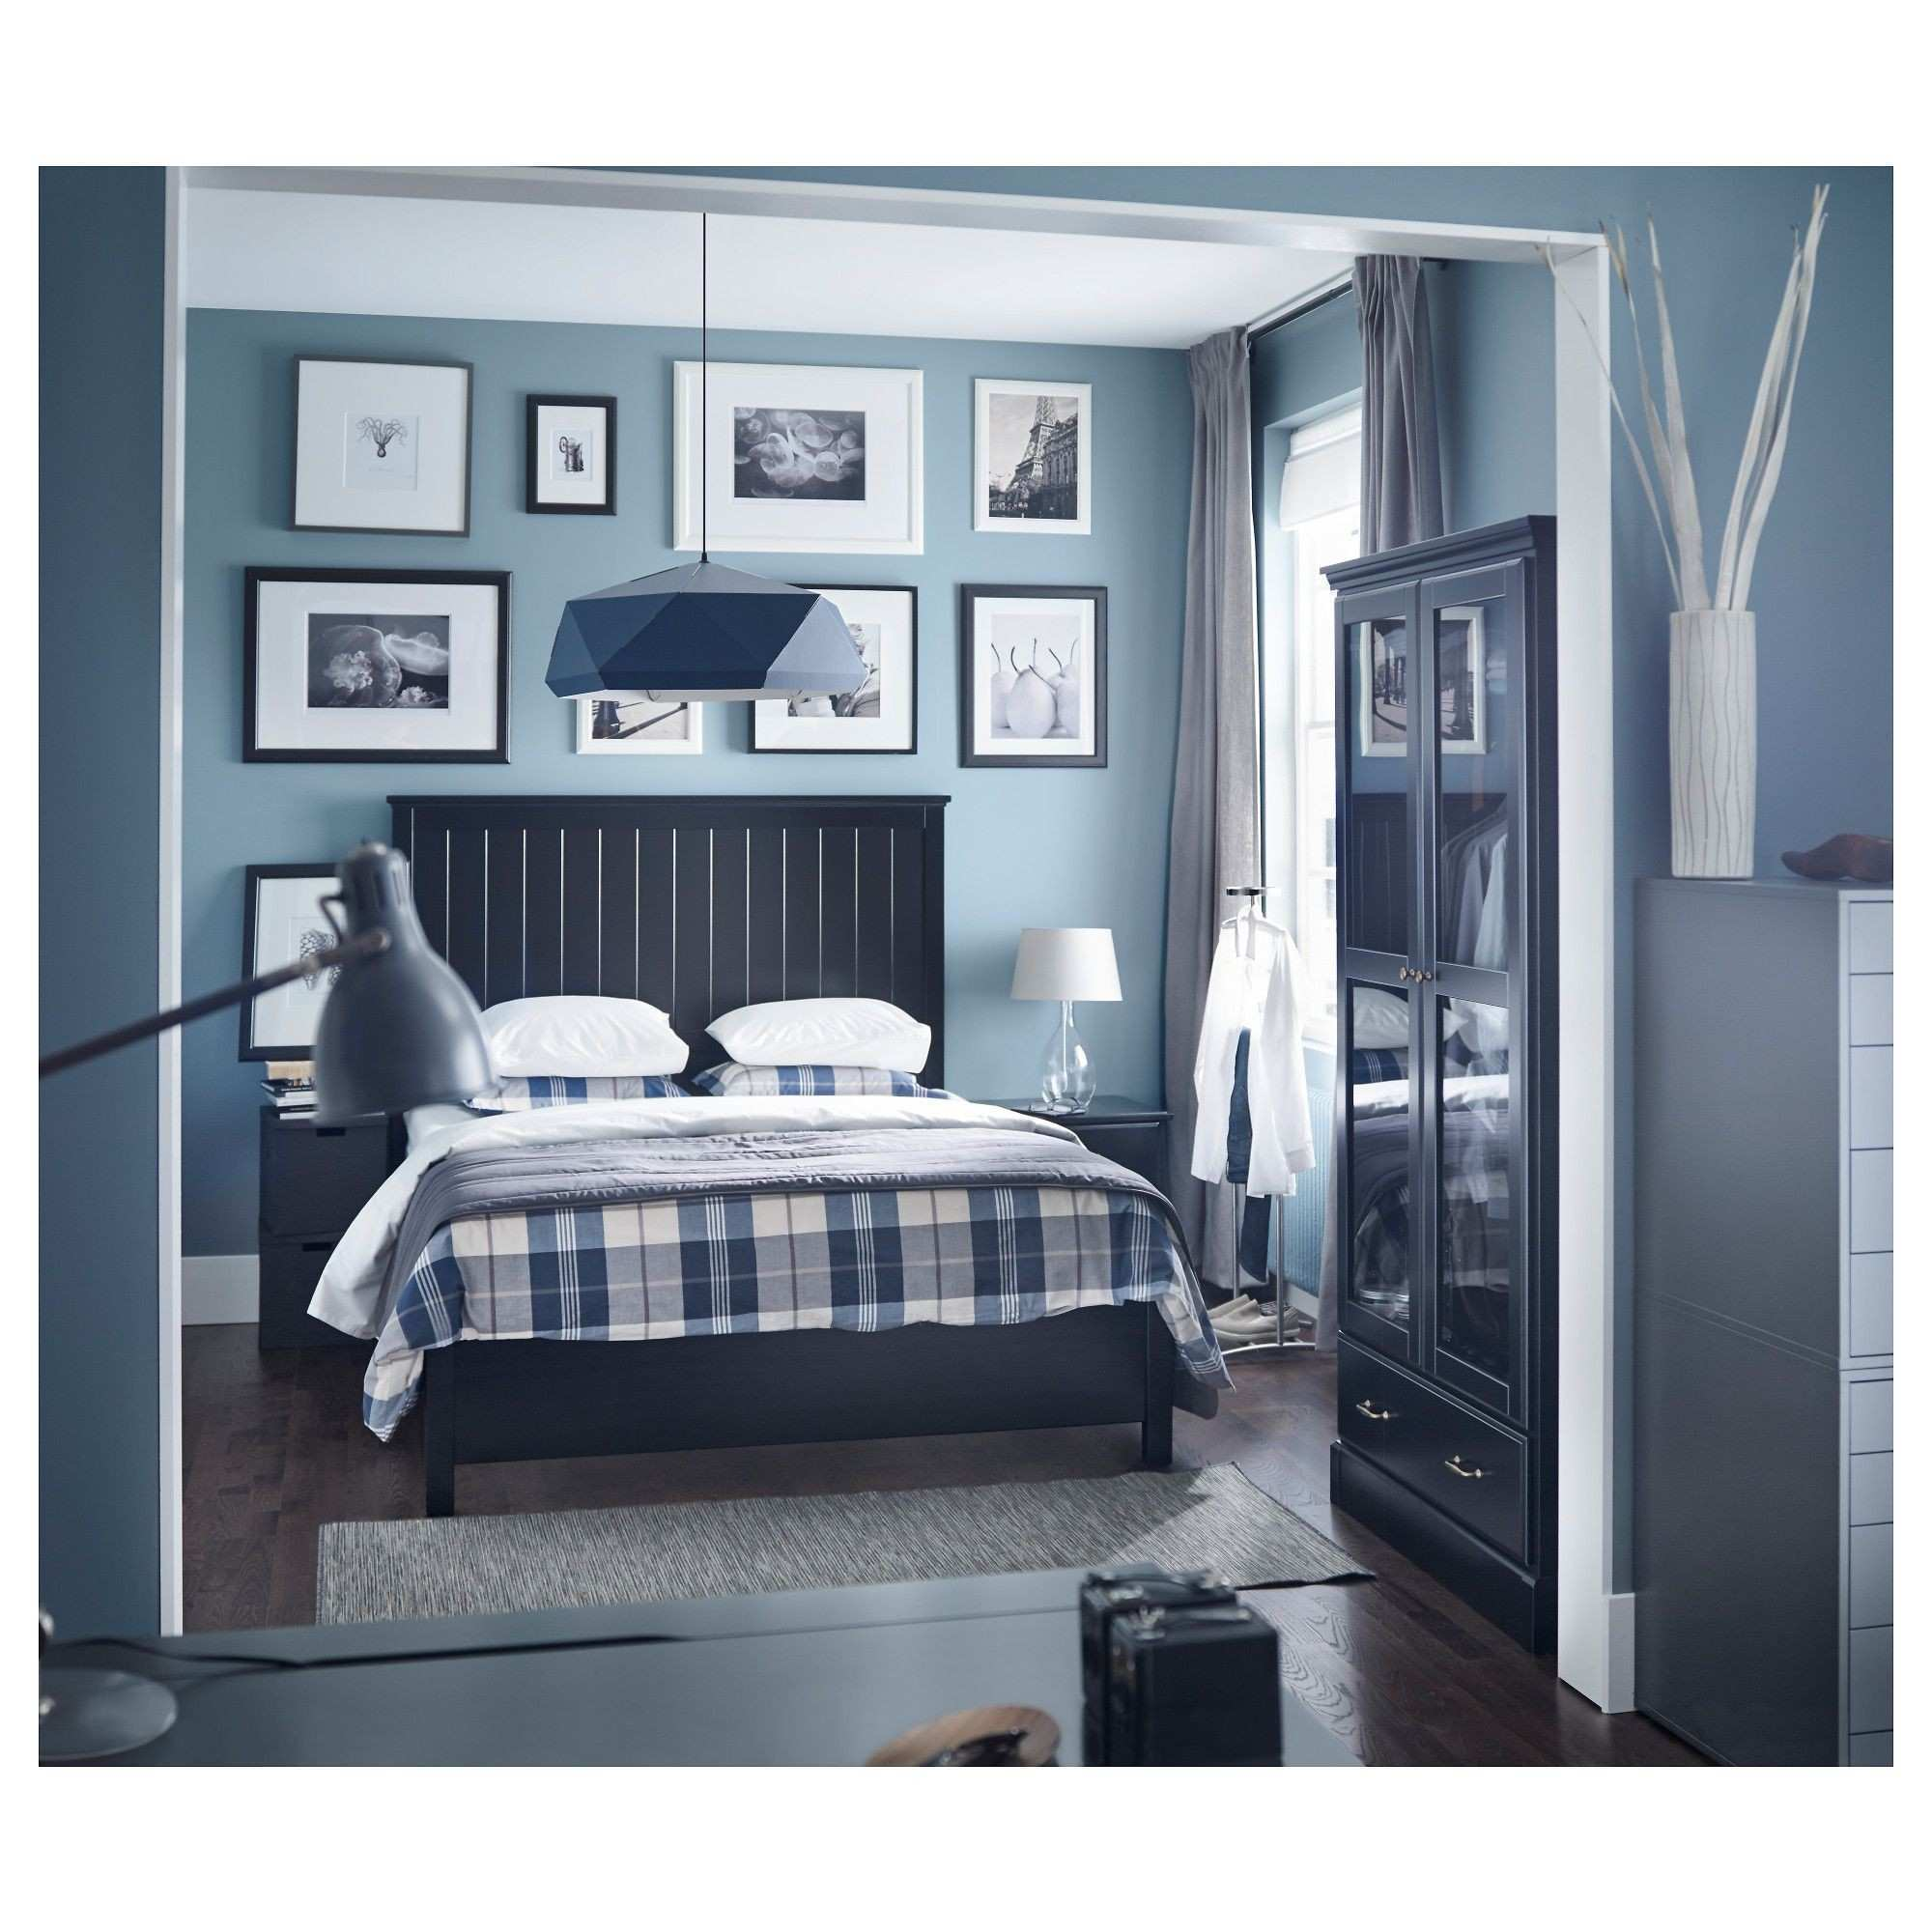 PH S5 JPG 2000—2000 IKEA Bedroom Pinterest